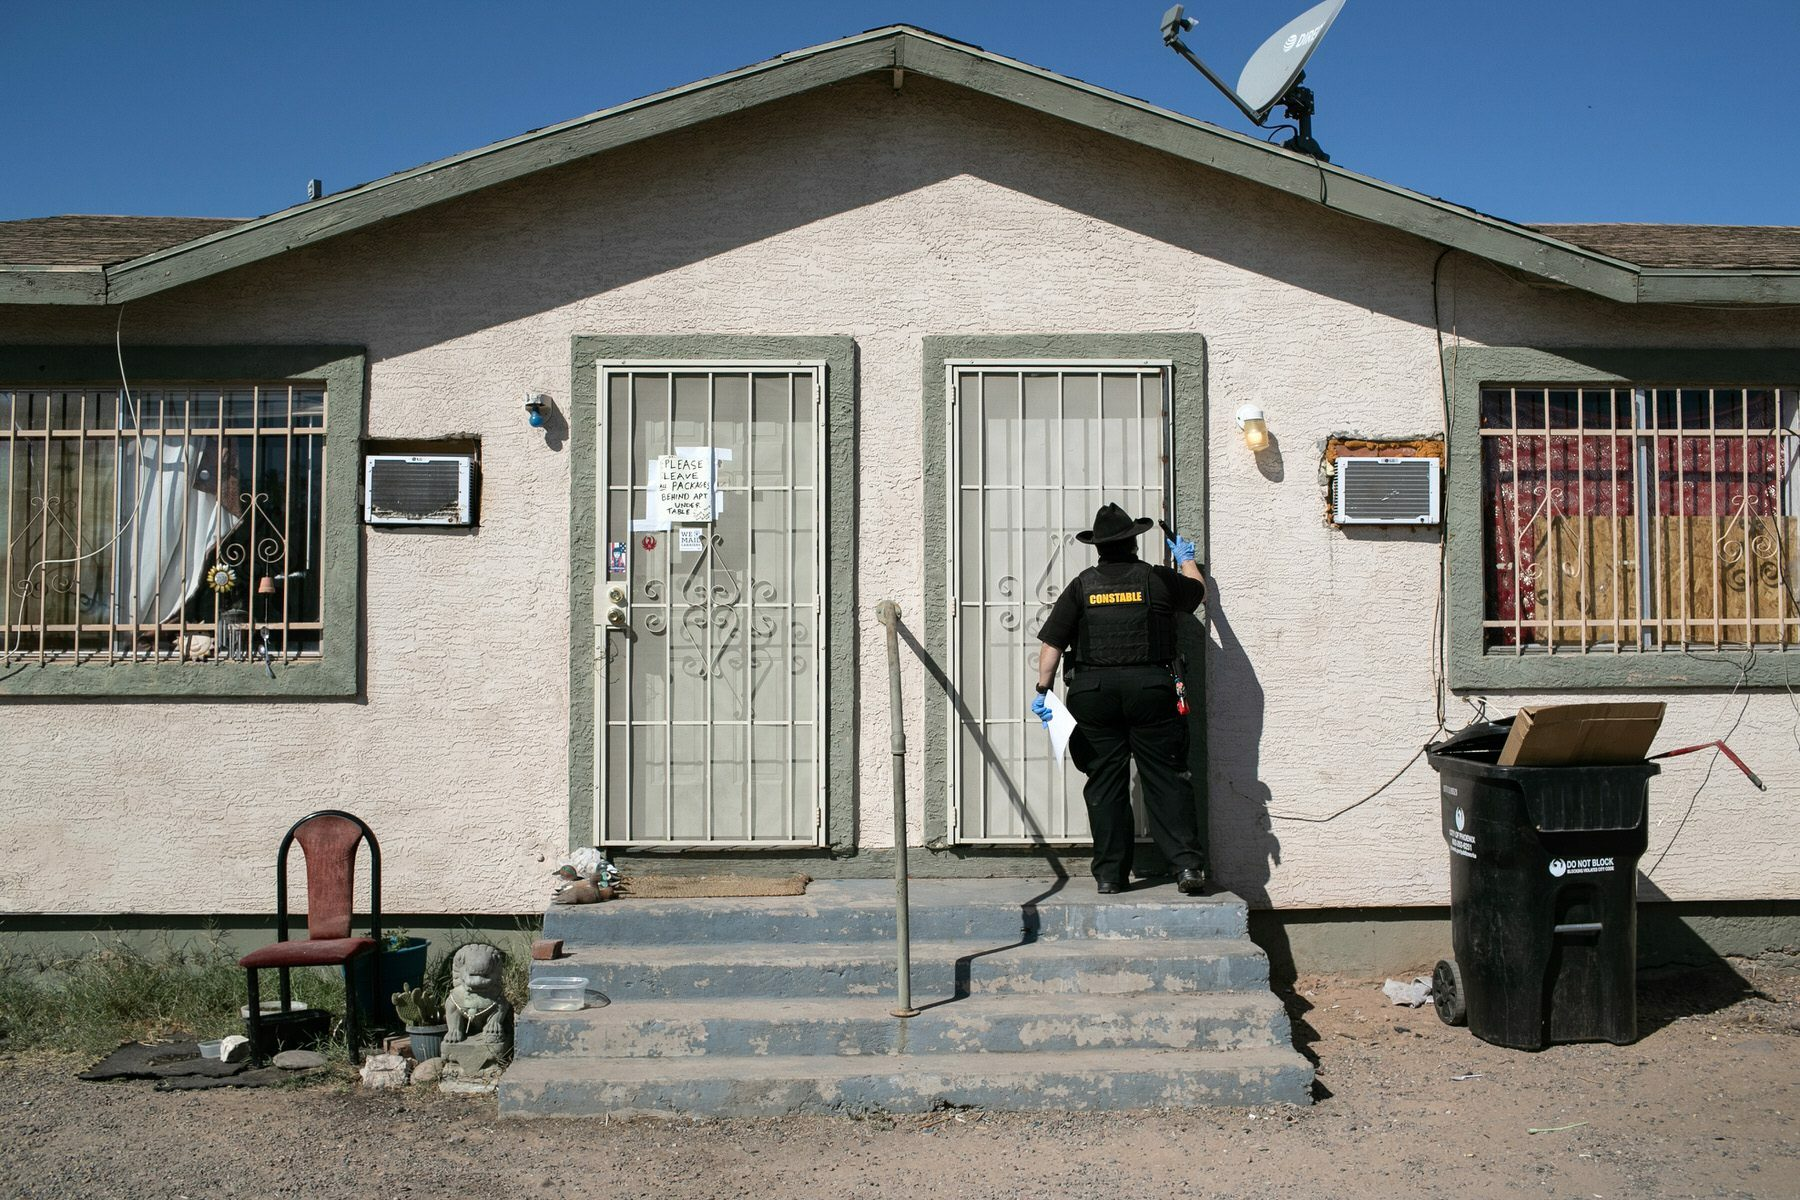 Maricopa County constable knocks on a door before posting an eviction order.